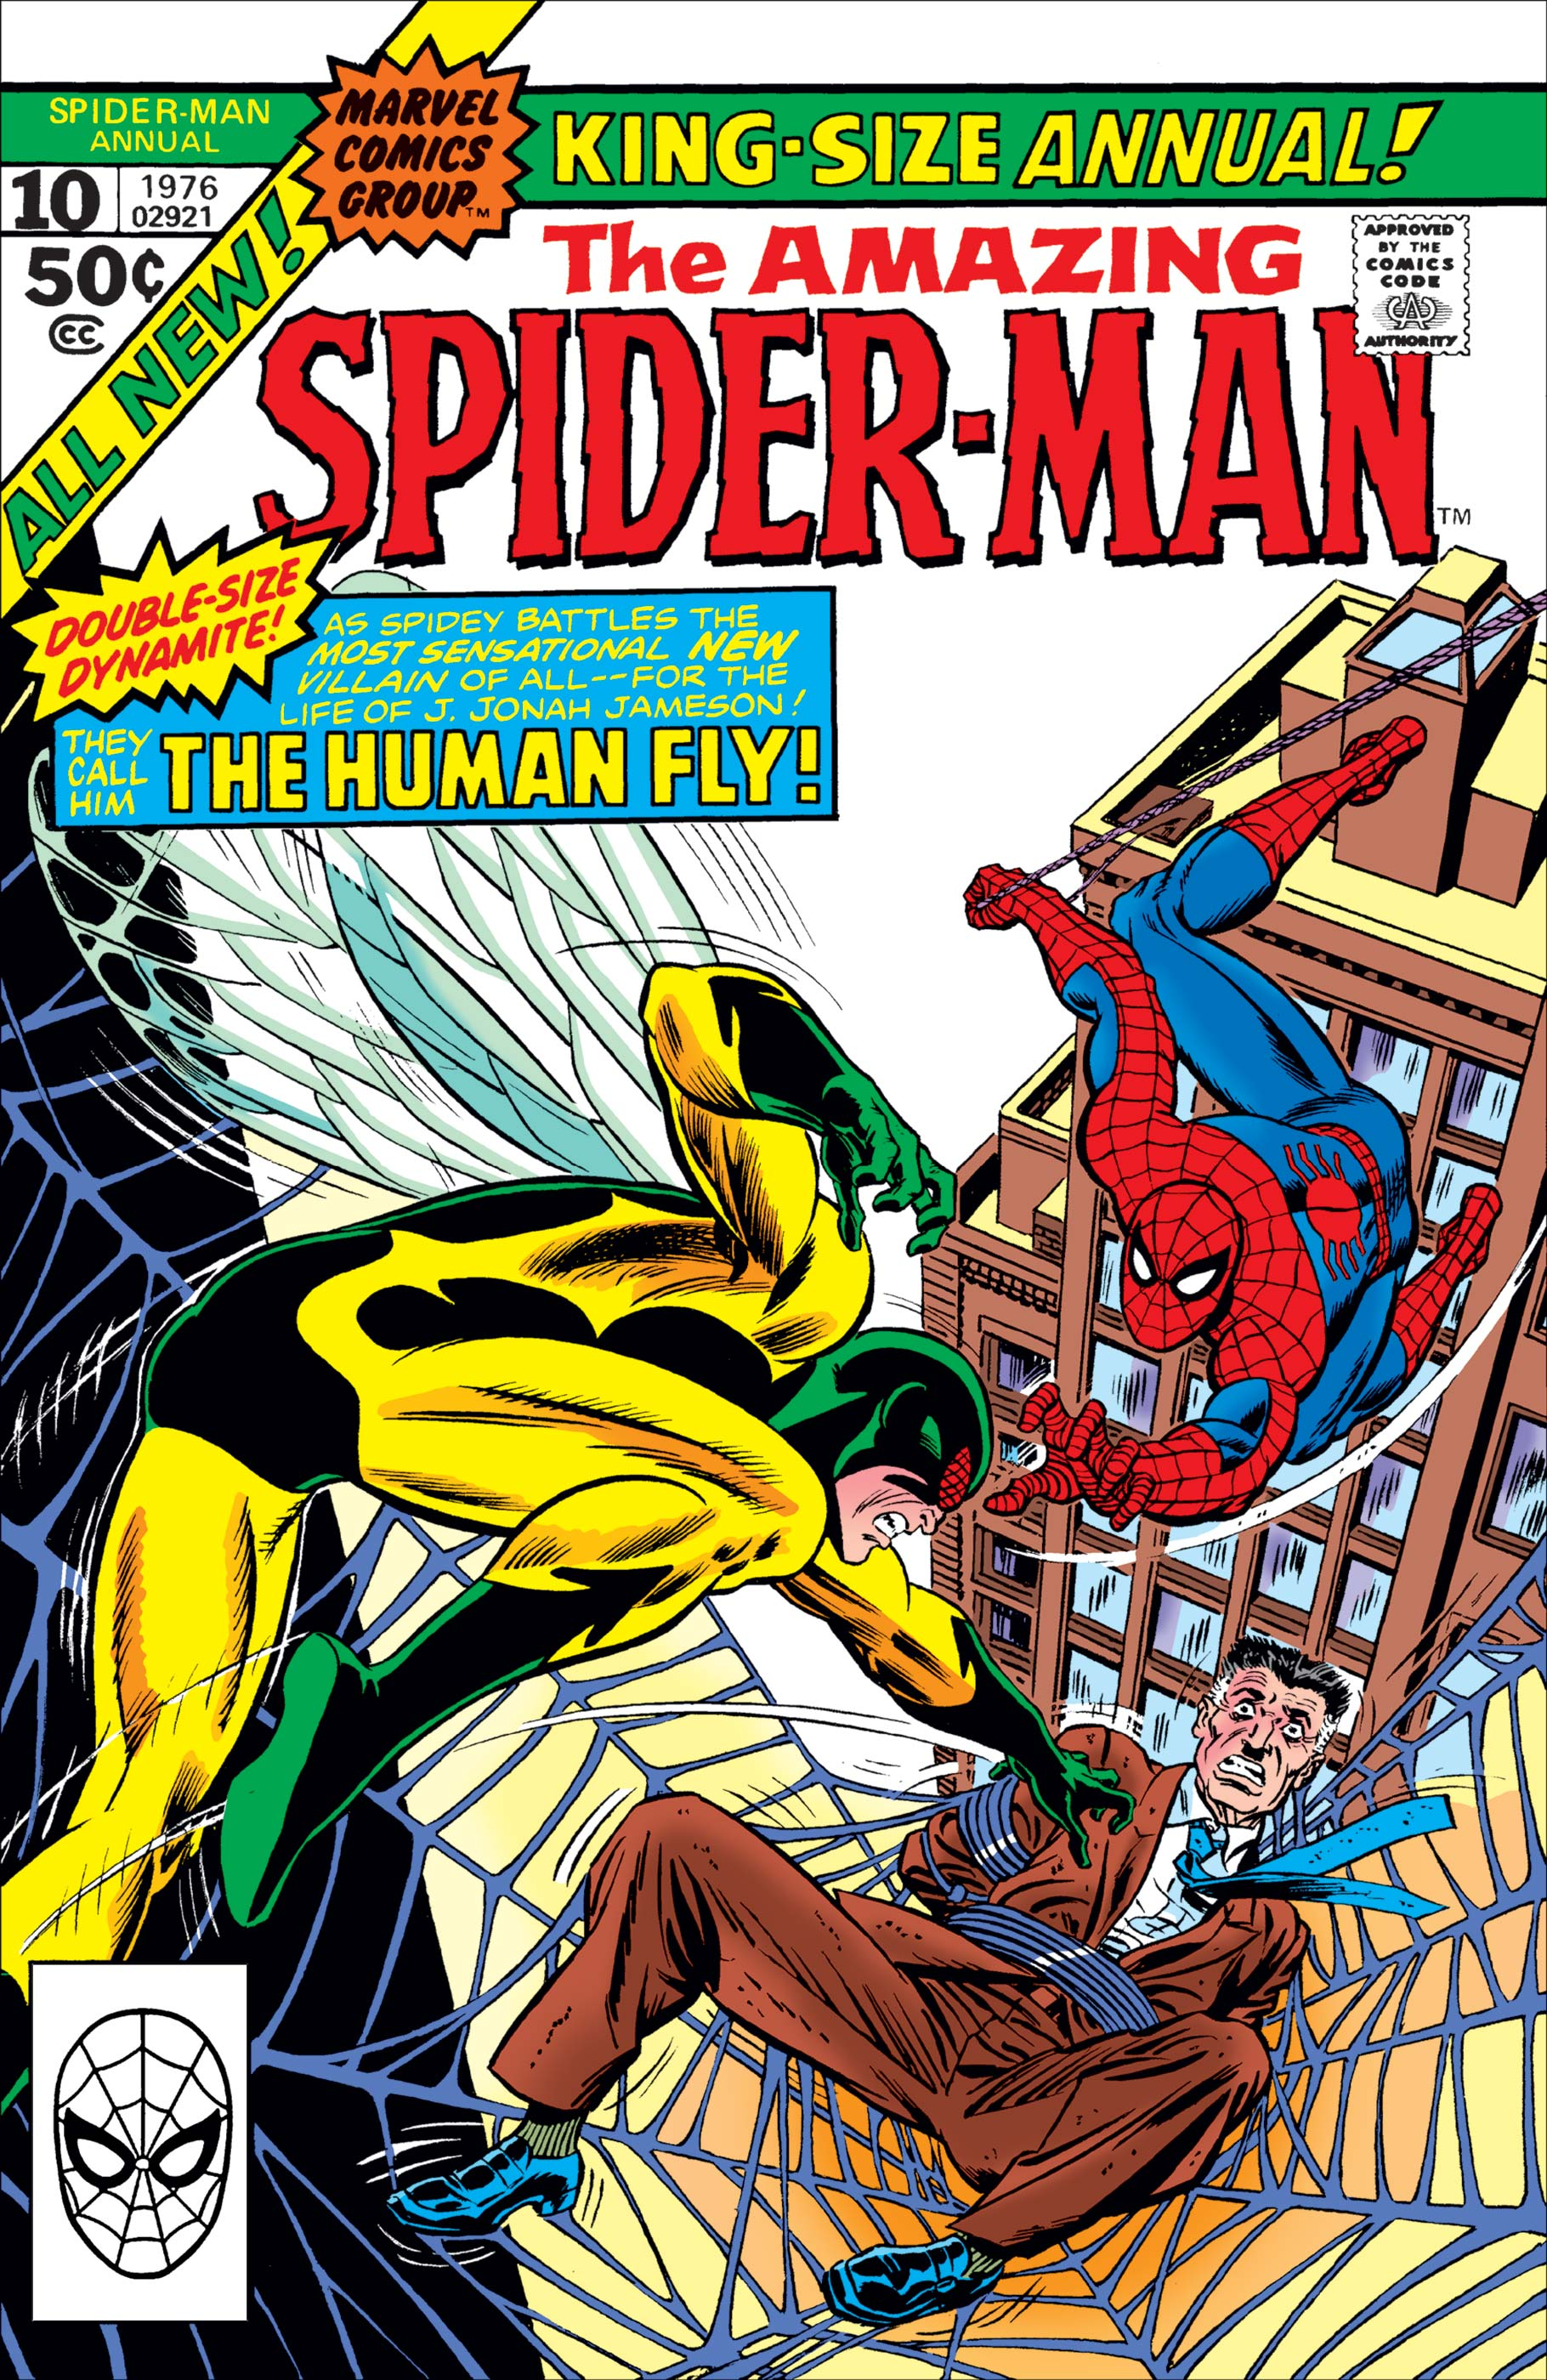 Amazing Spider-Man Annual (1964) #10